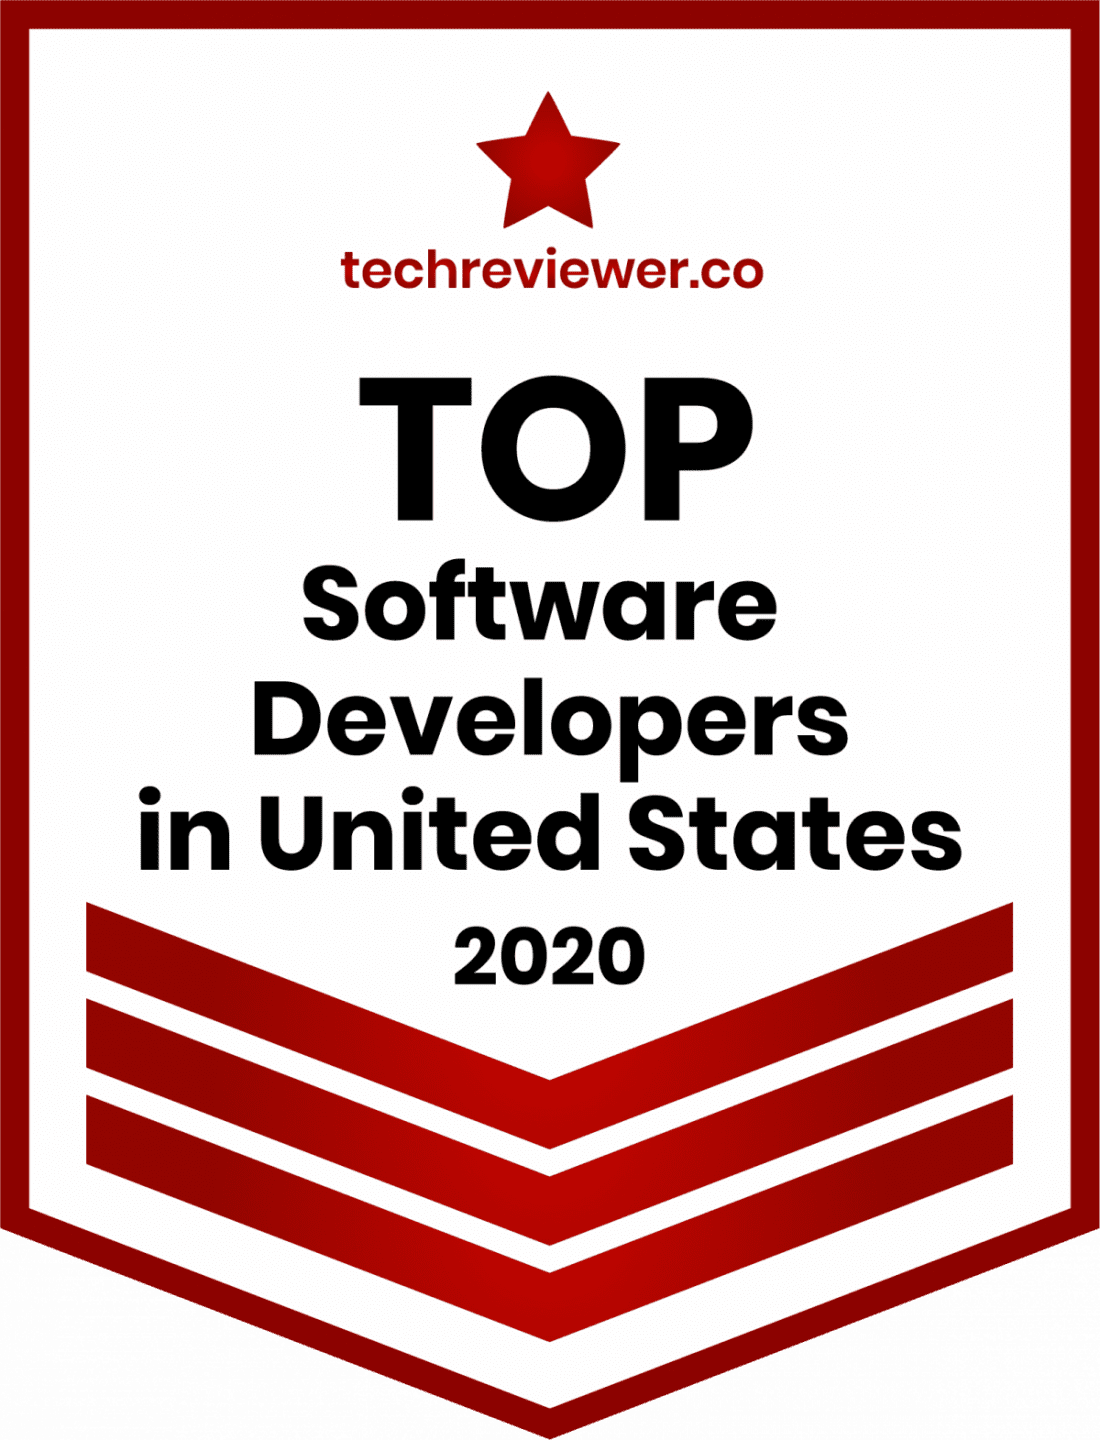 Top Software Developer in United States